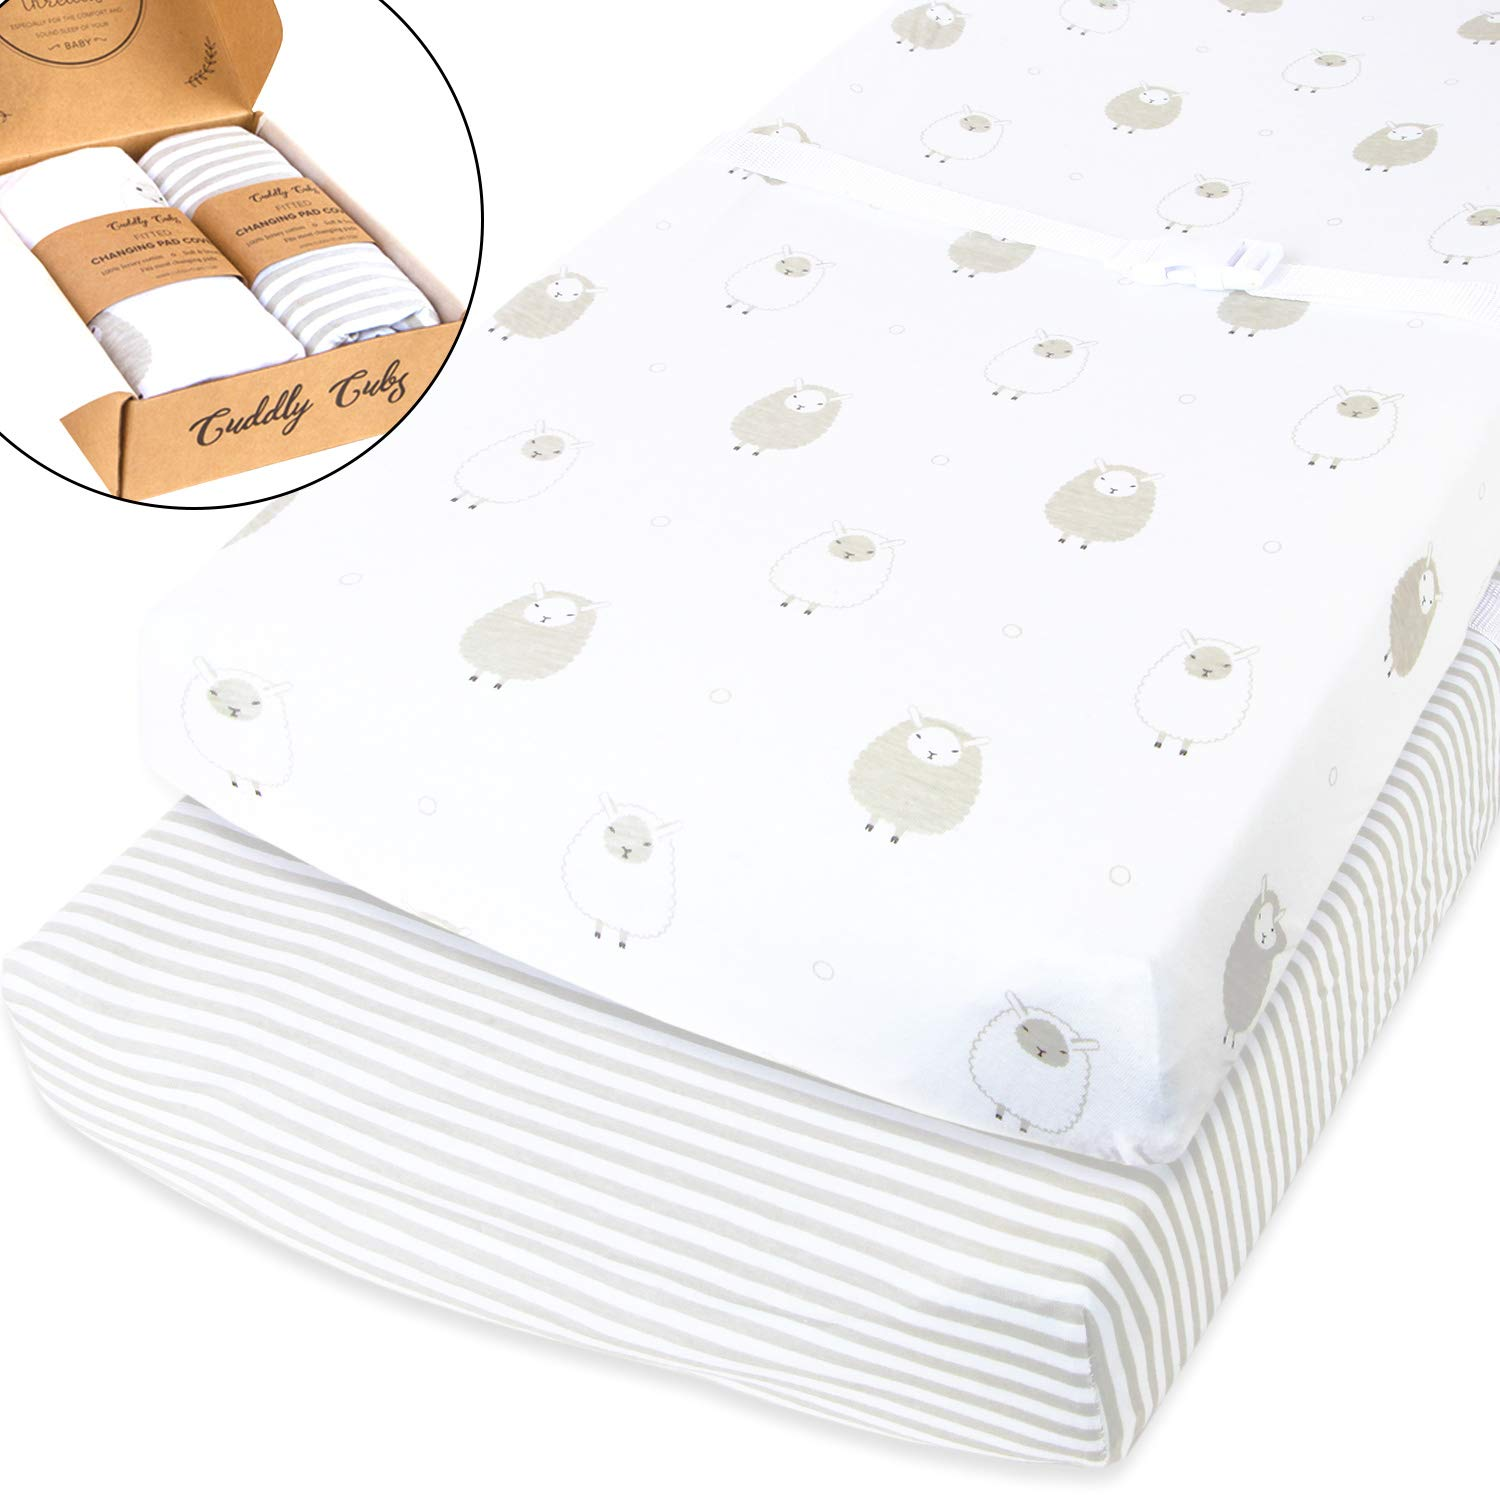 Cuddly Cubs Pack n Play Sheets | 2 Pack Playard Sheet For Baby Girl and Boy | 100% Jersey Cotton Unisex Mini Portable Crib Sheets | Sheep and Stripe in Grey | Best Baby Shower Gift | Fits Graco Orion Brands